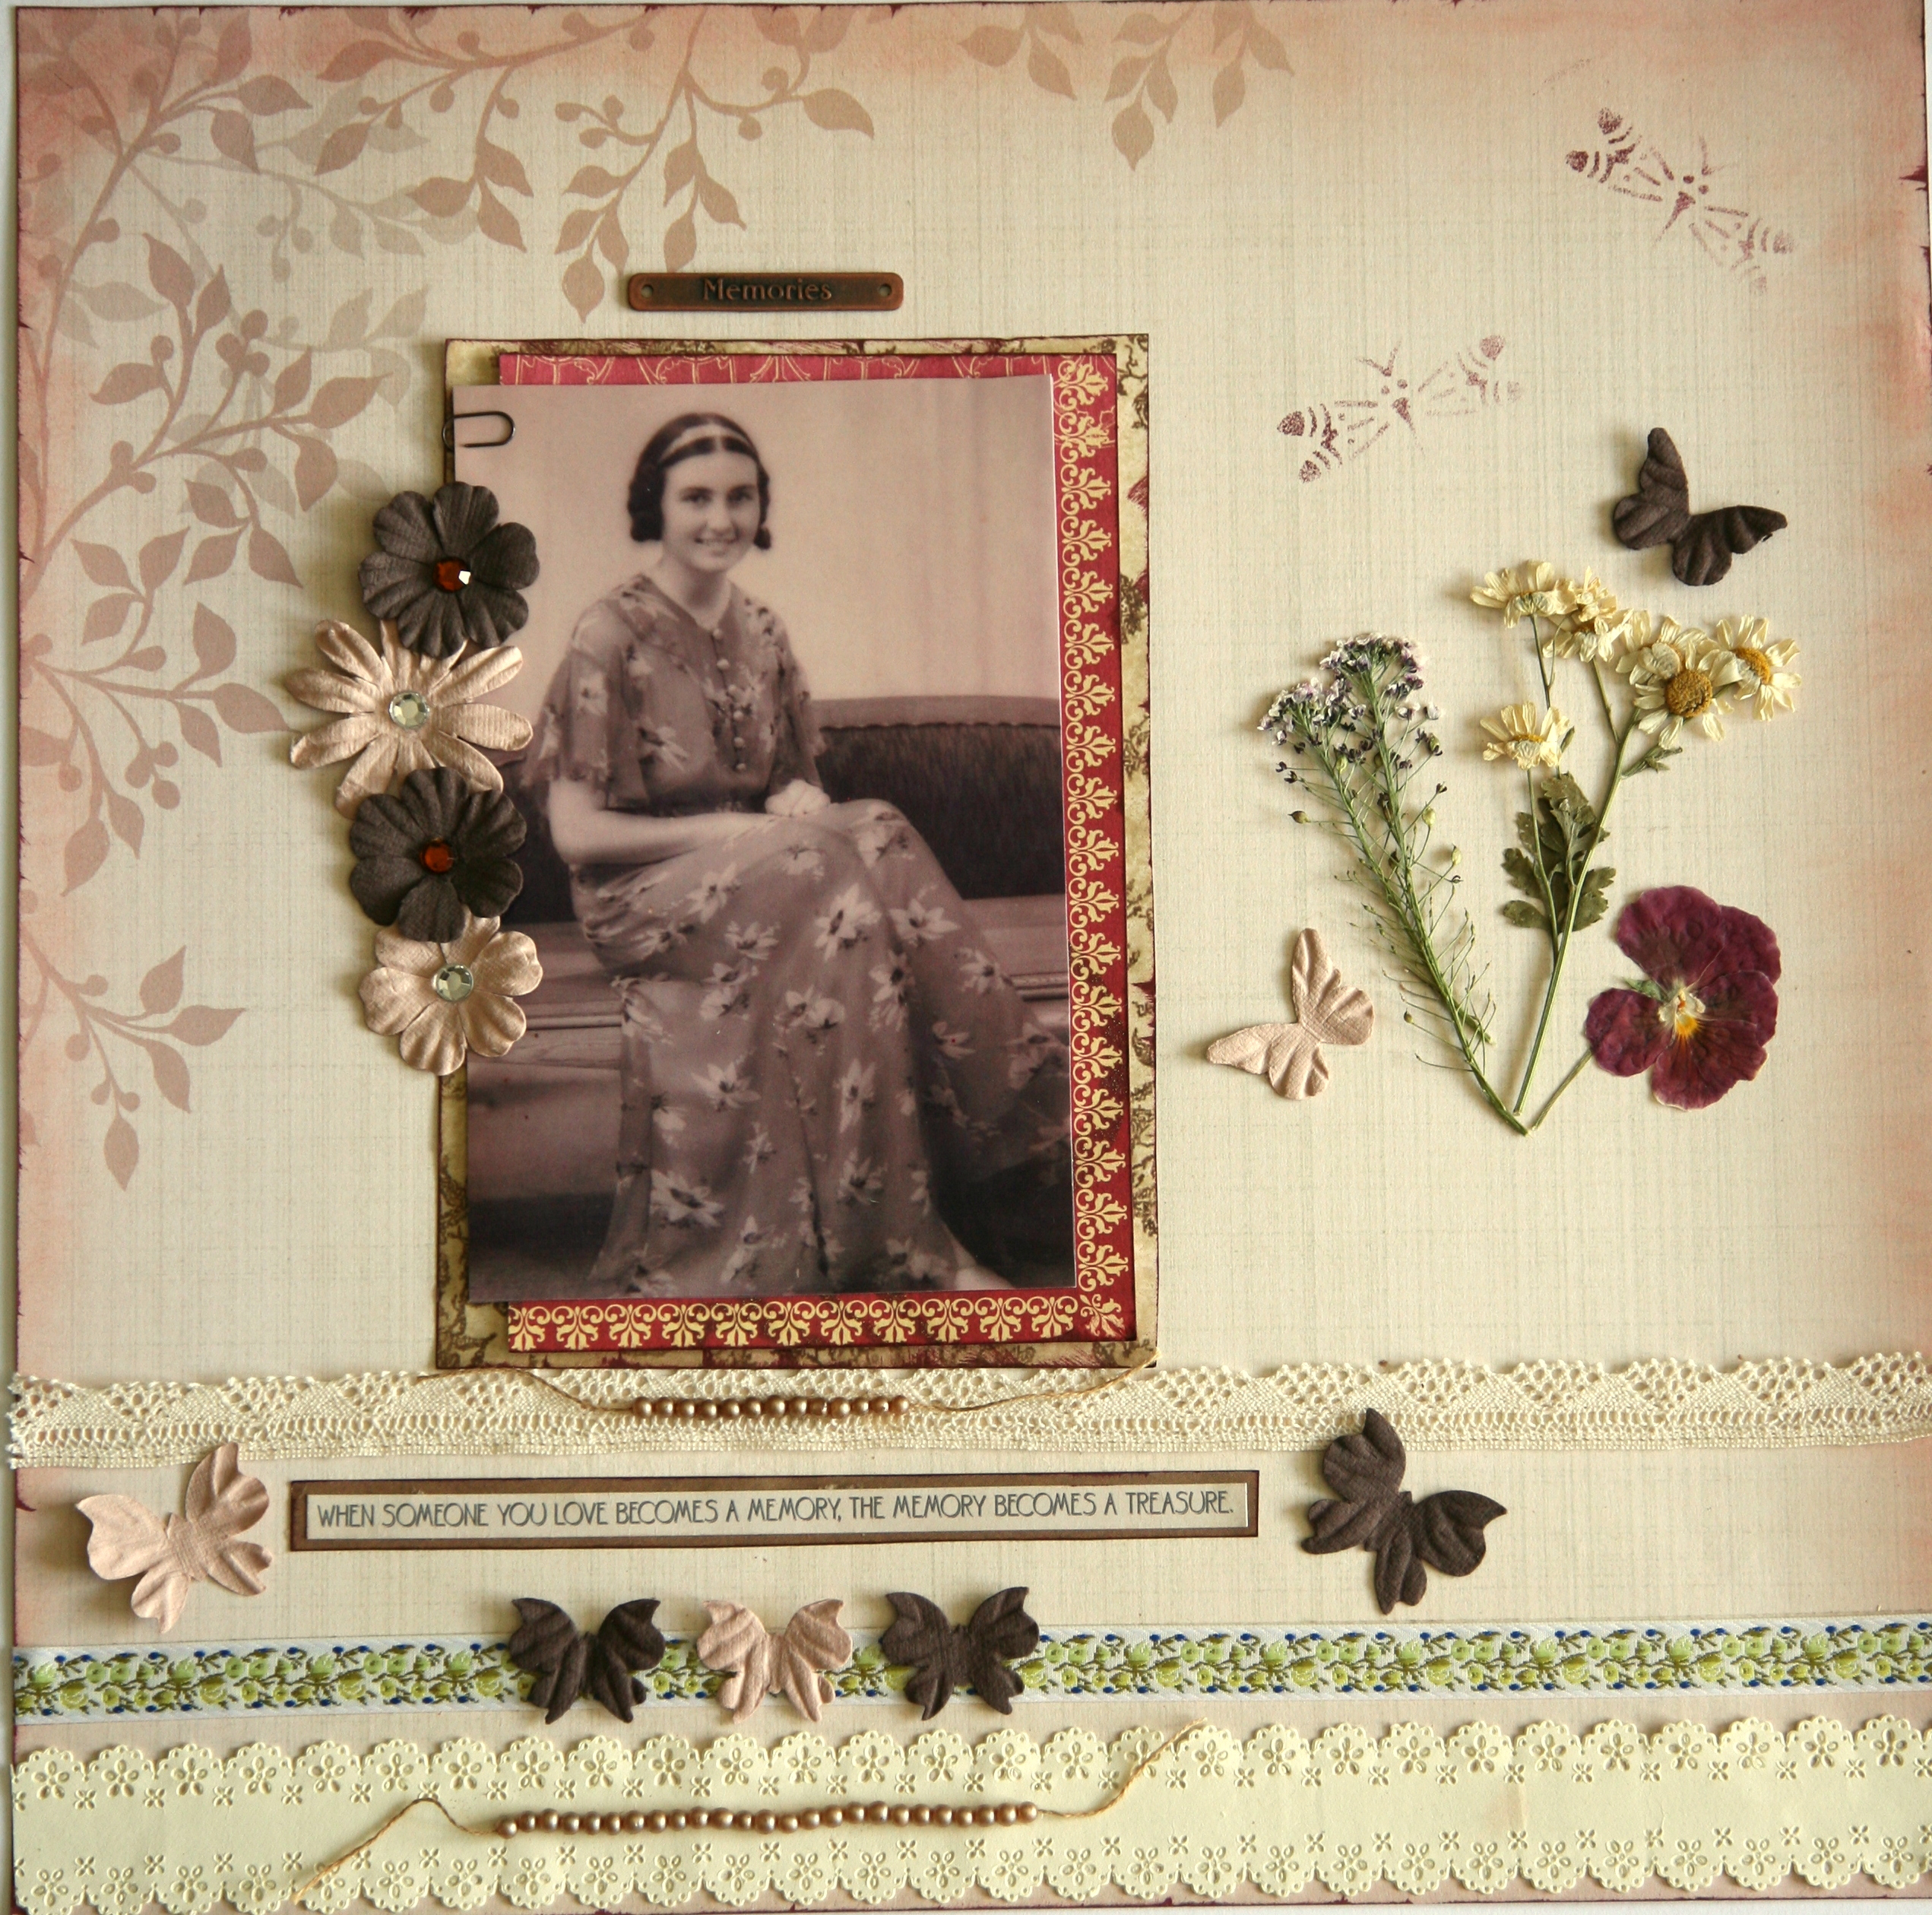 How to scrapbook pressed flowers - For This Scrapbook Page I Used Ribbon Lace Paper Flowers And Butterflies And Beads From A Broken Vintage Necklace To Honour My Grandmother S Love Of